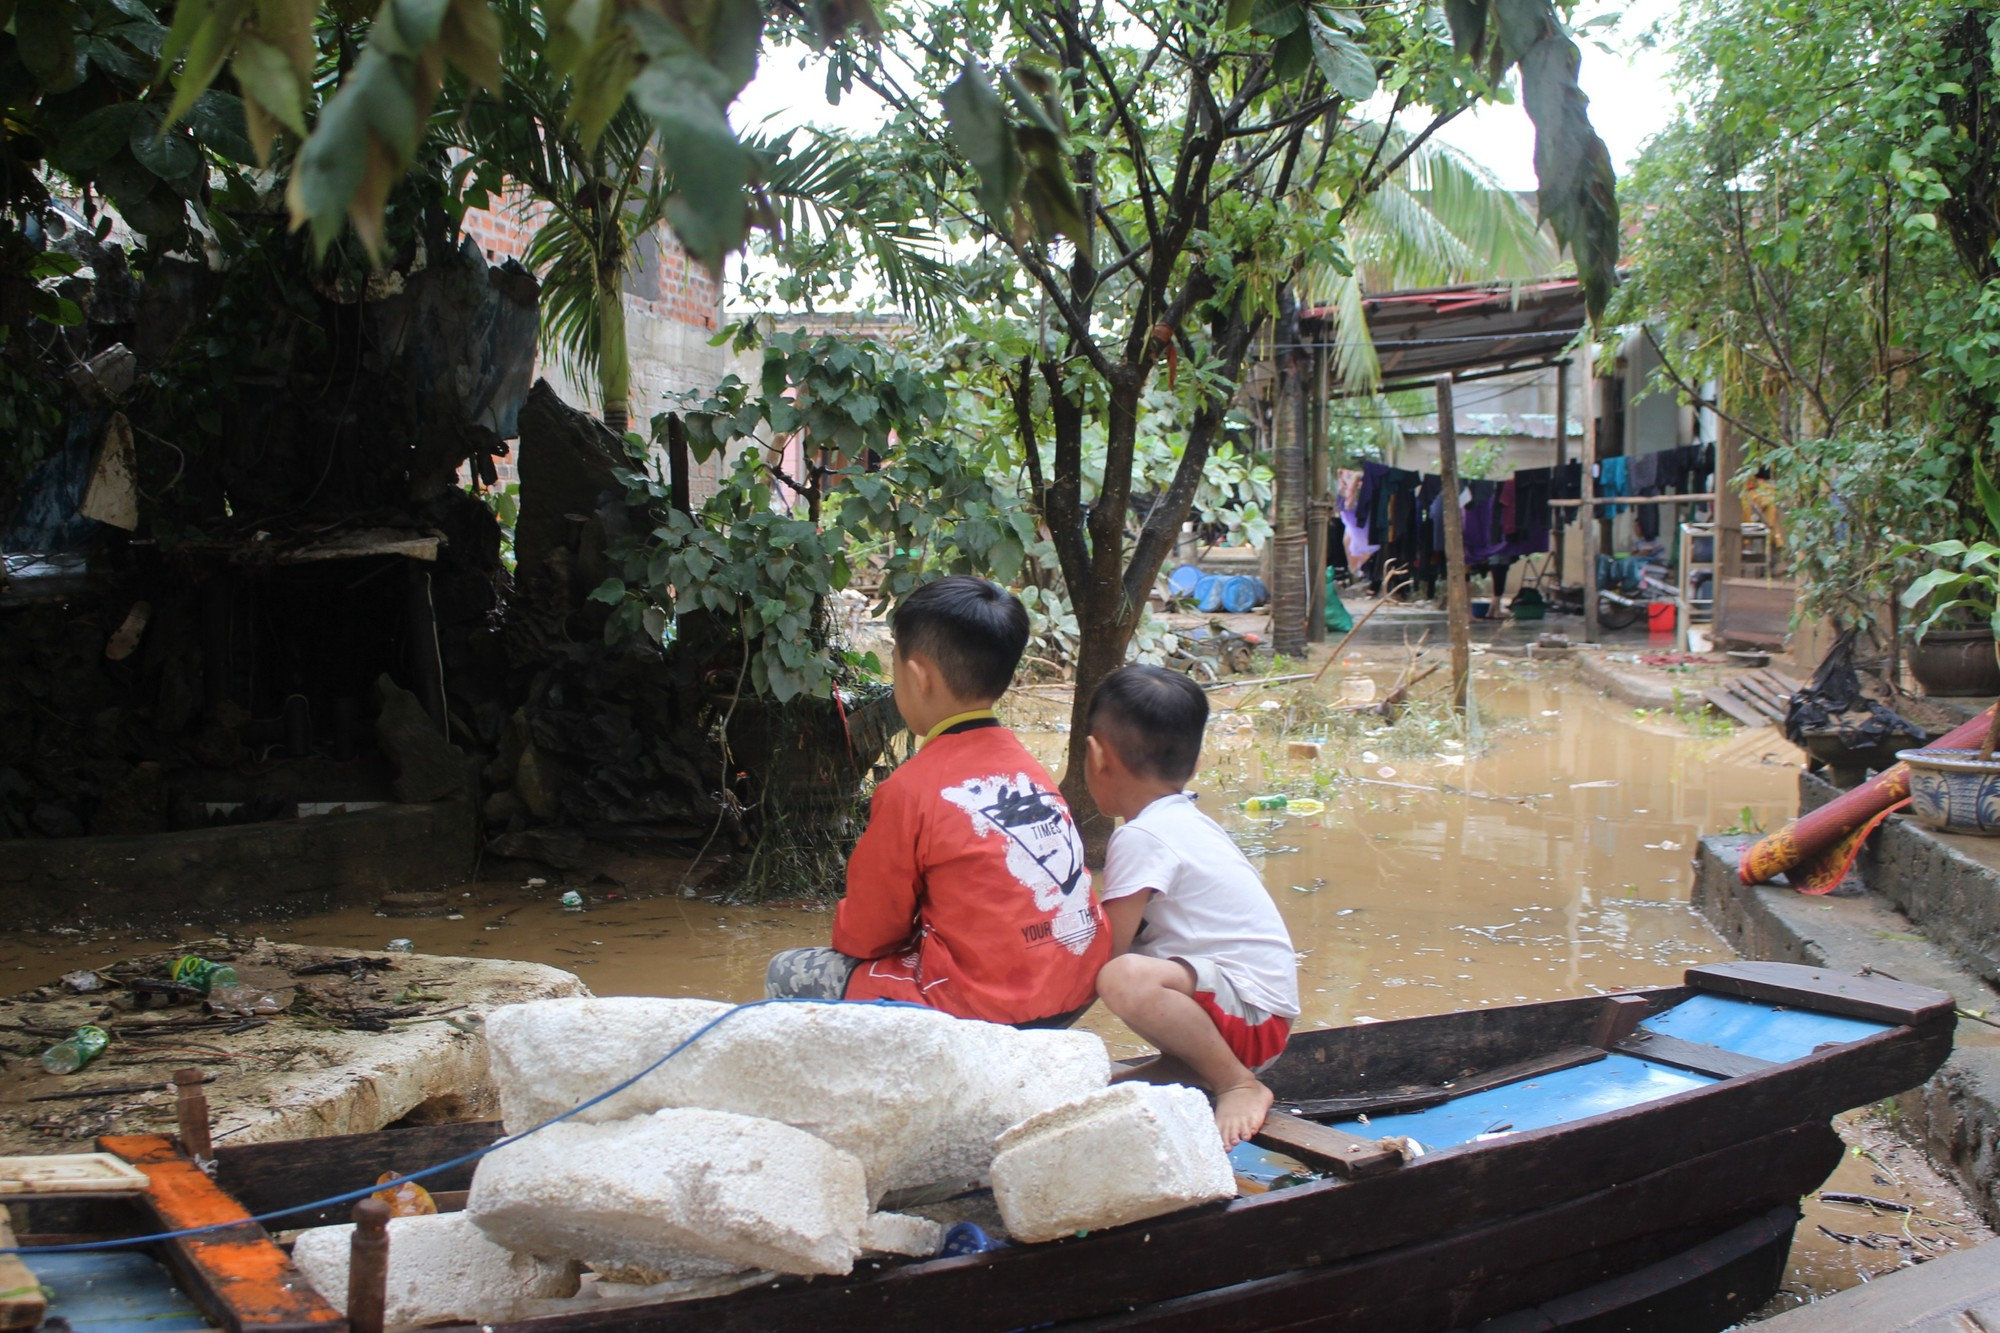 two children sit on a small boat in a flooded village.